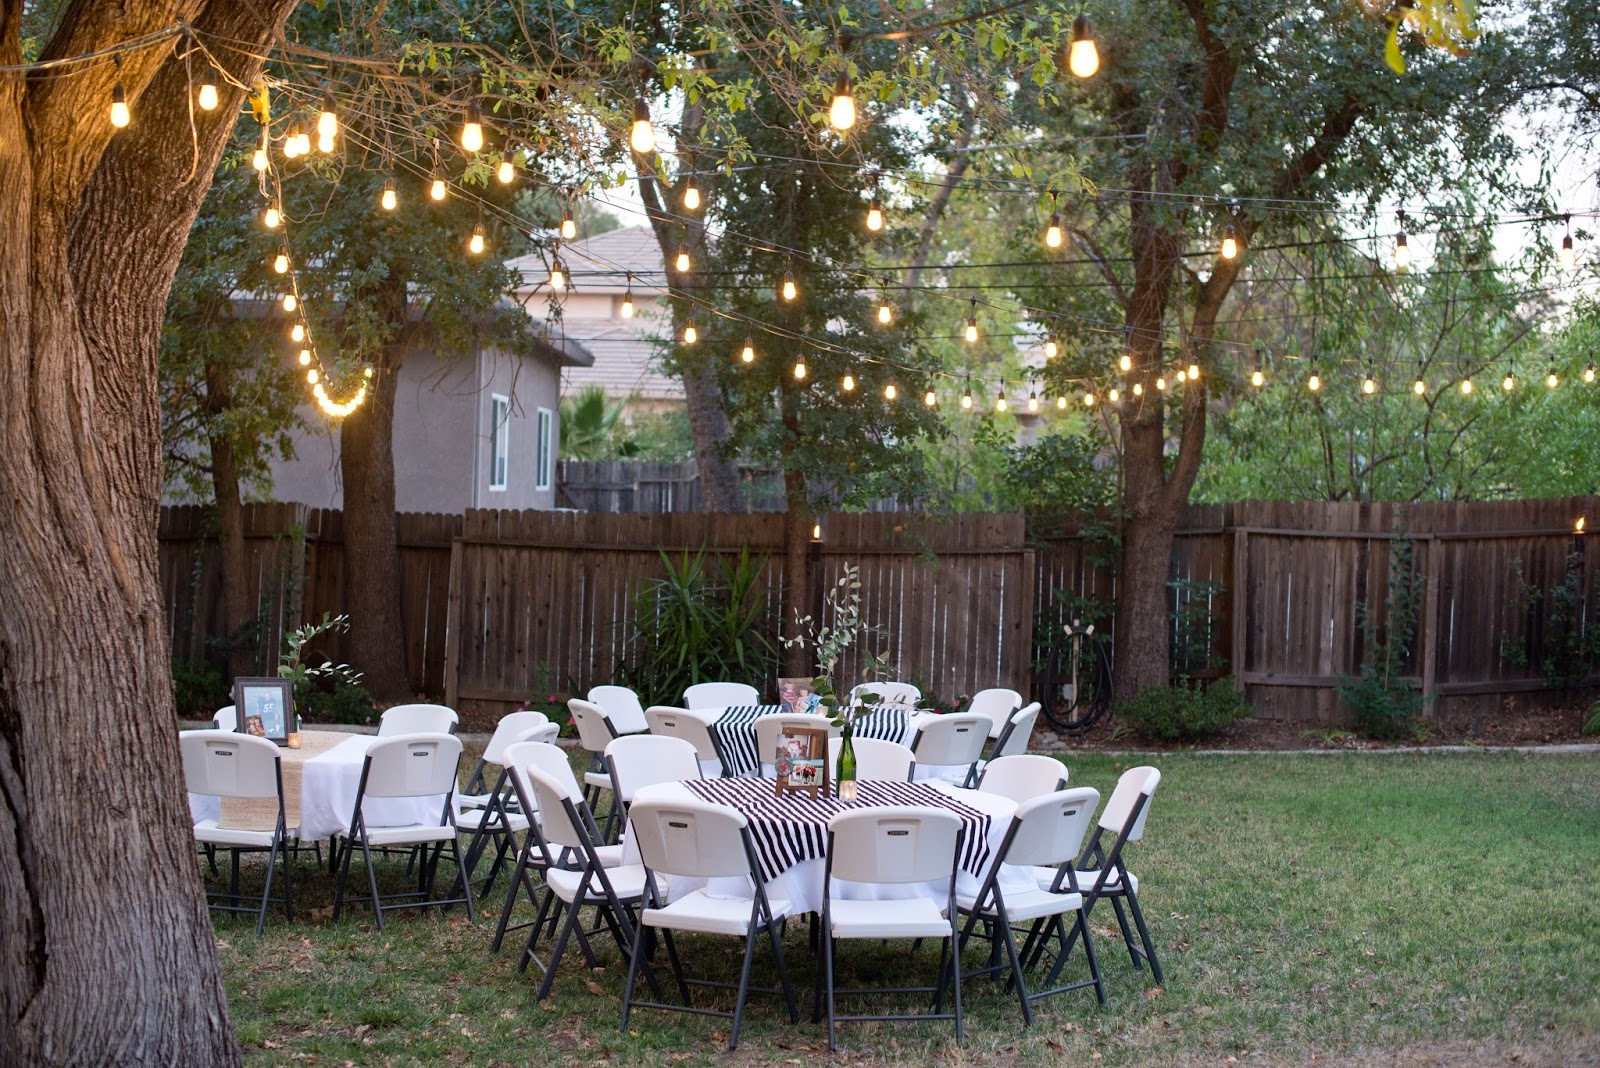 Charmant Backyard Birthday Party: For The Guy In Your Life